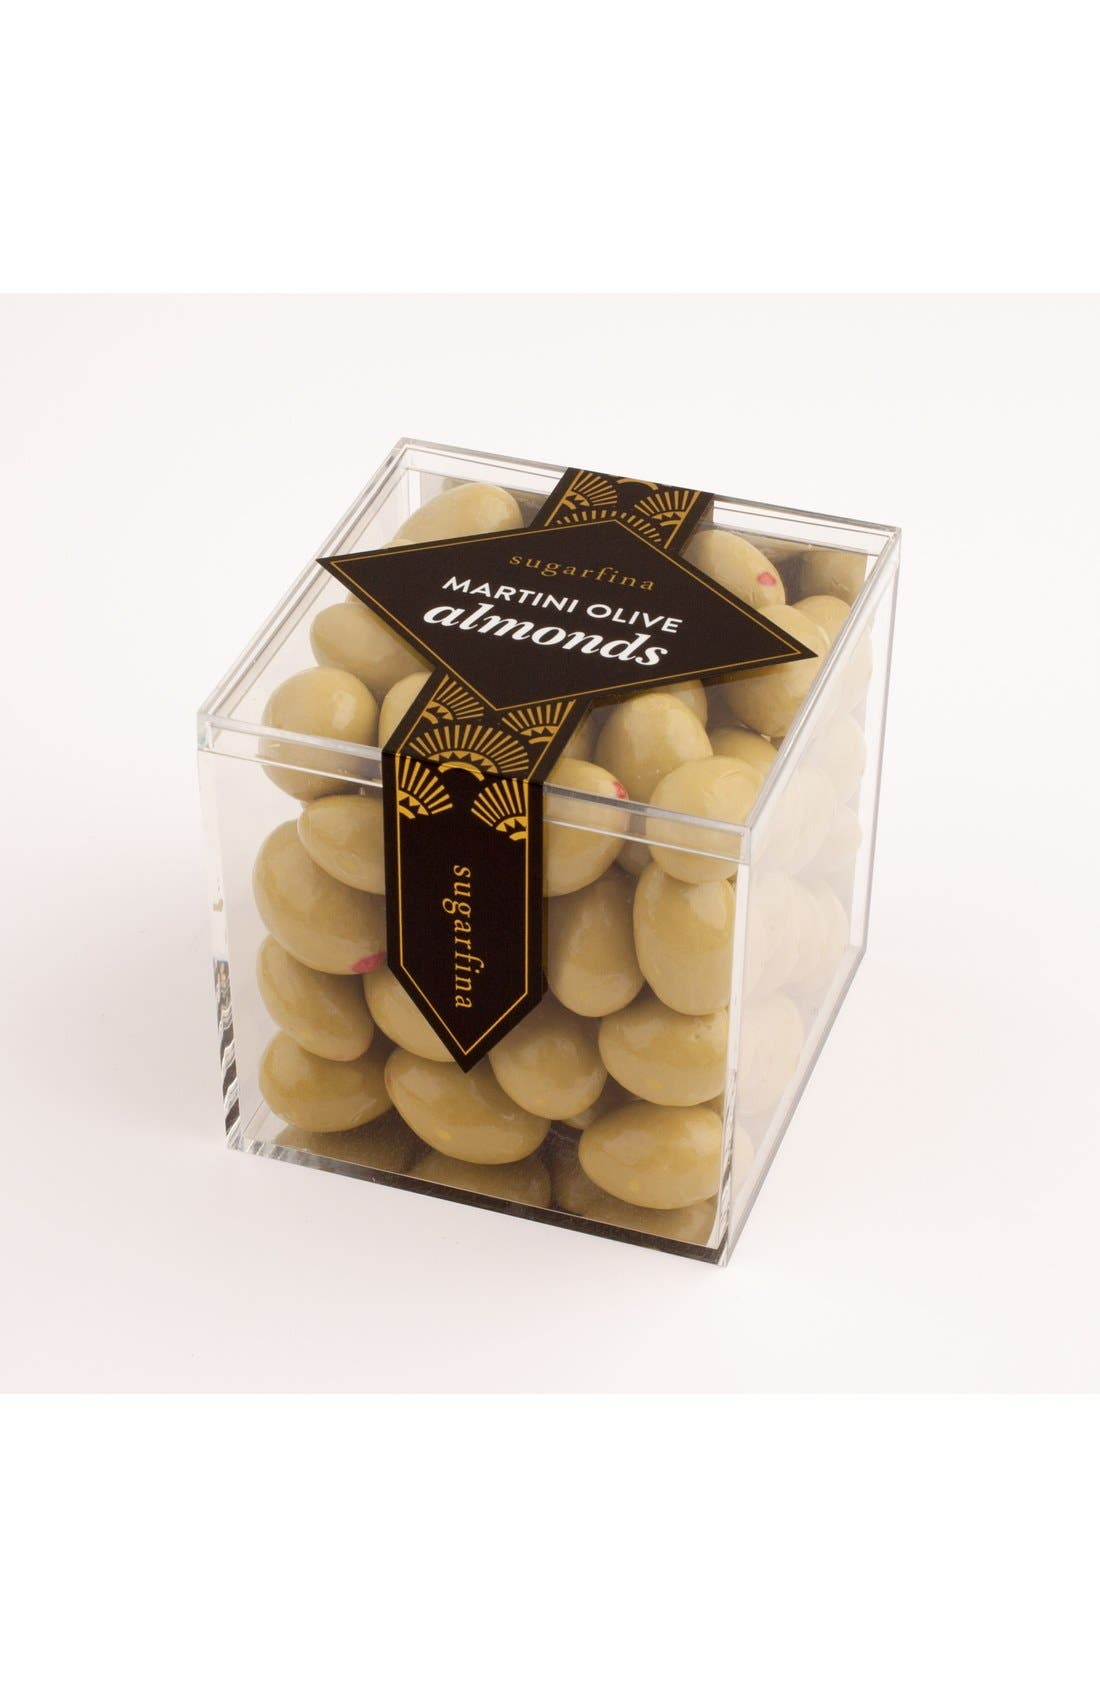 sugarfina 'Martini Olive' Chocolate Covered Almonds